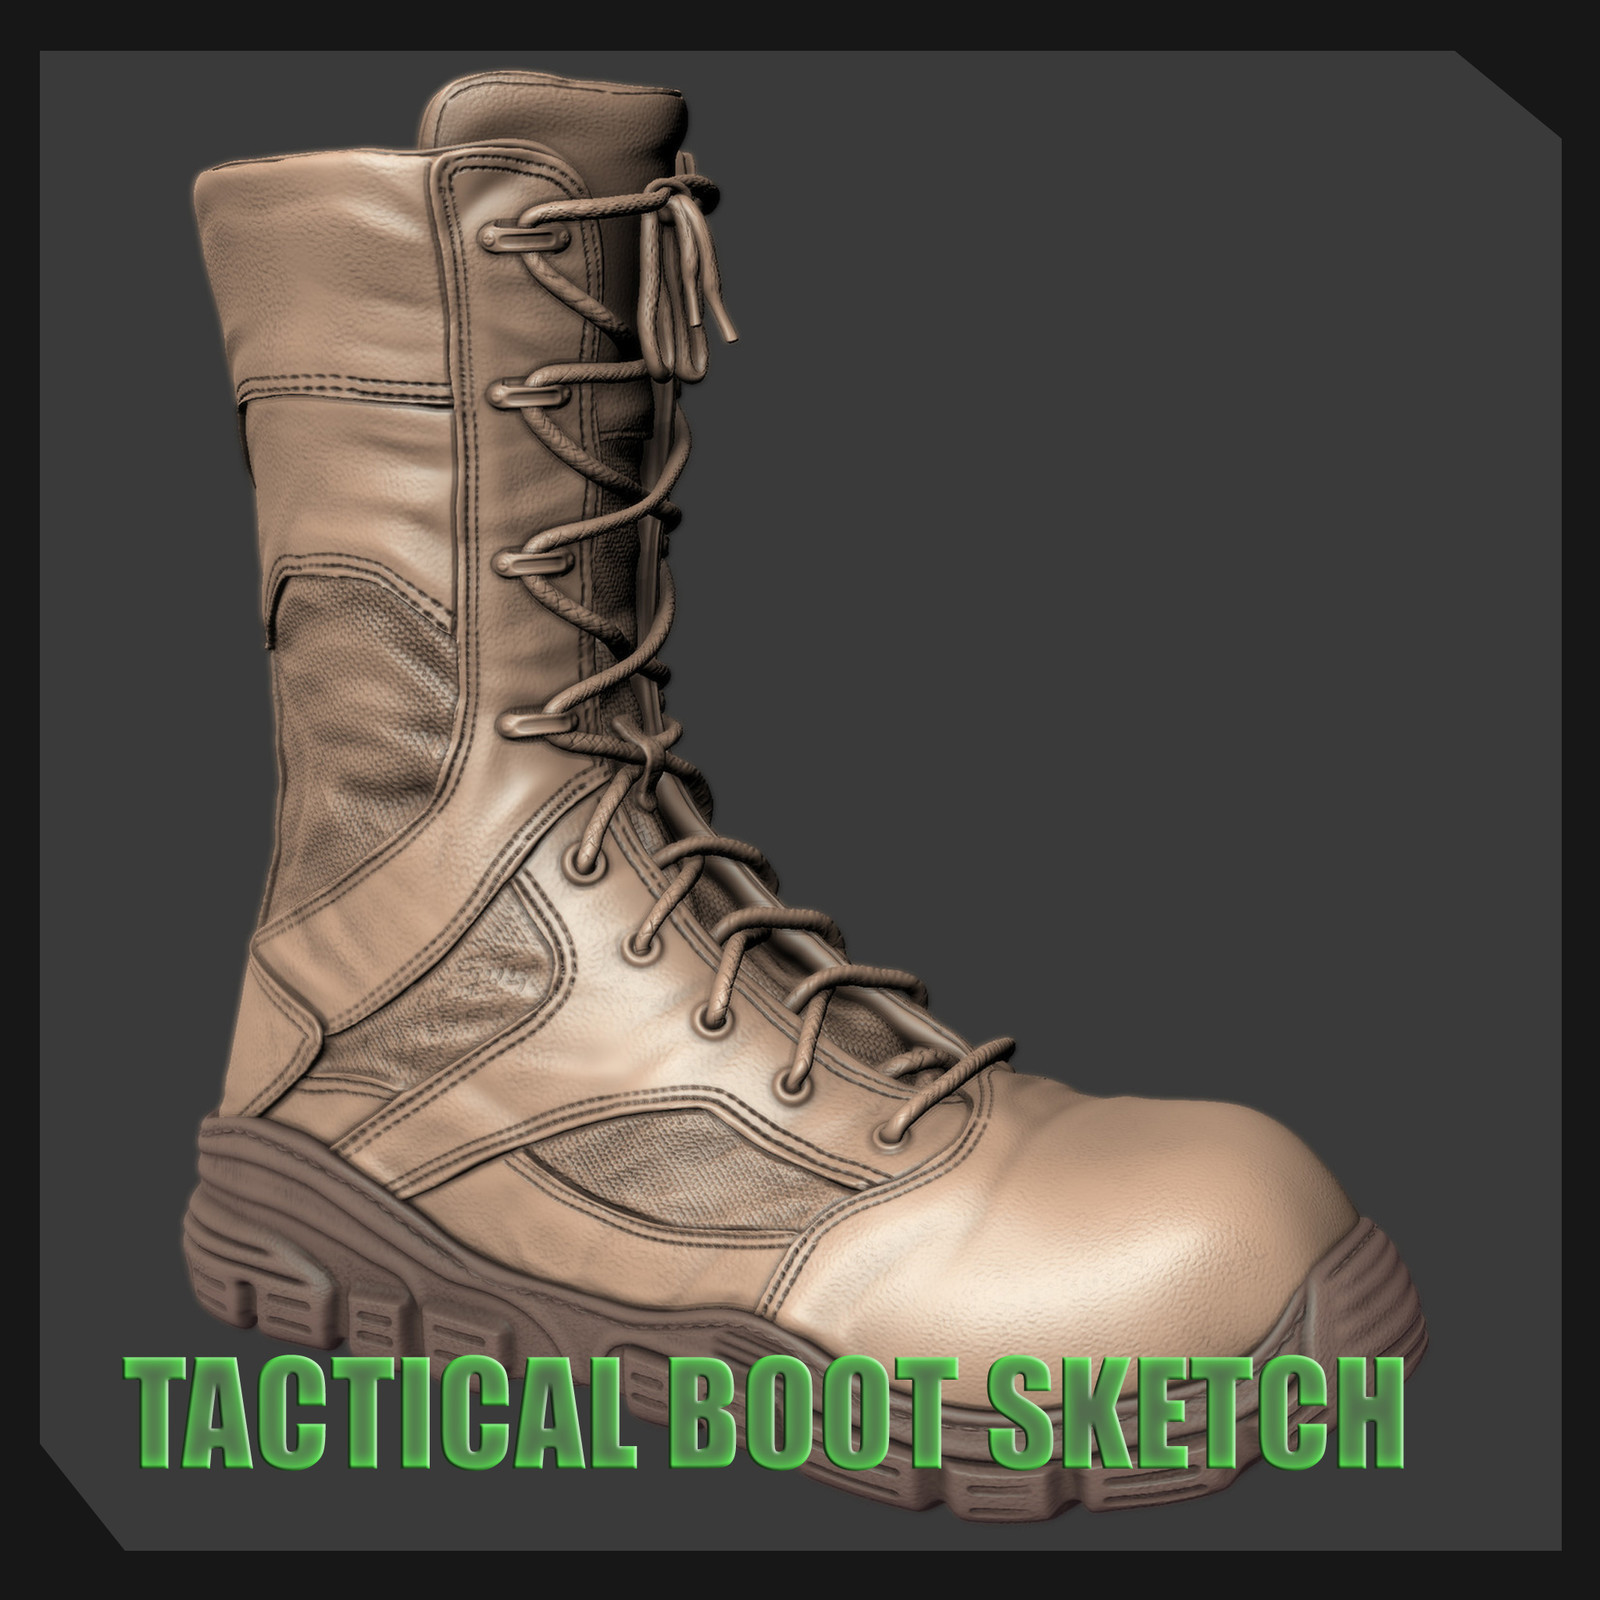 Tactical Boots Sketch